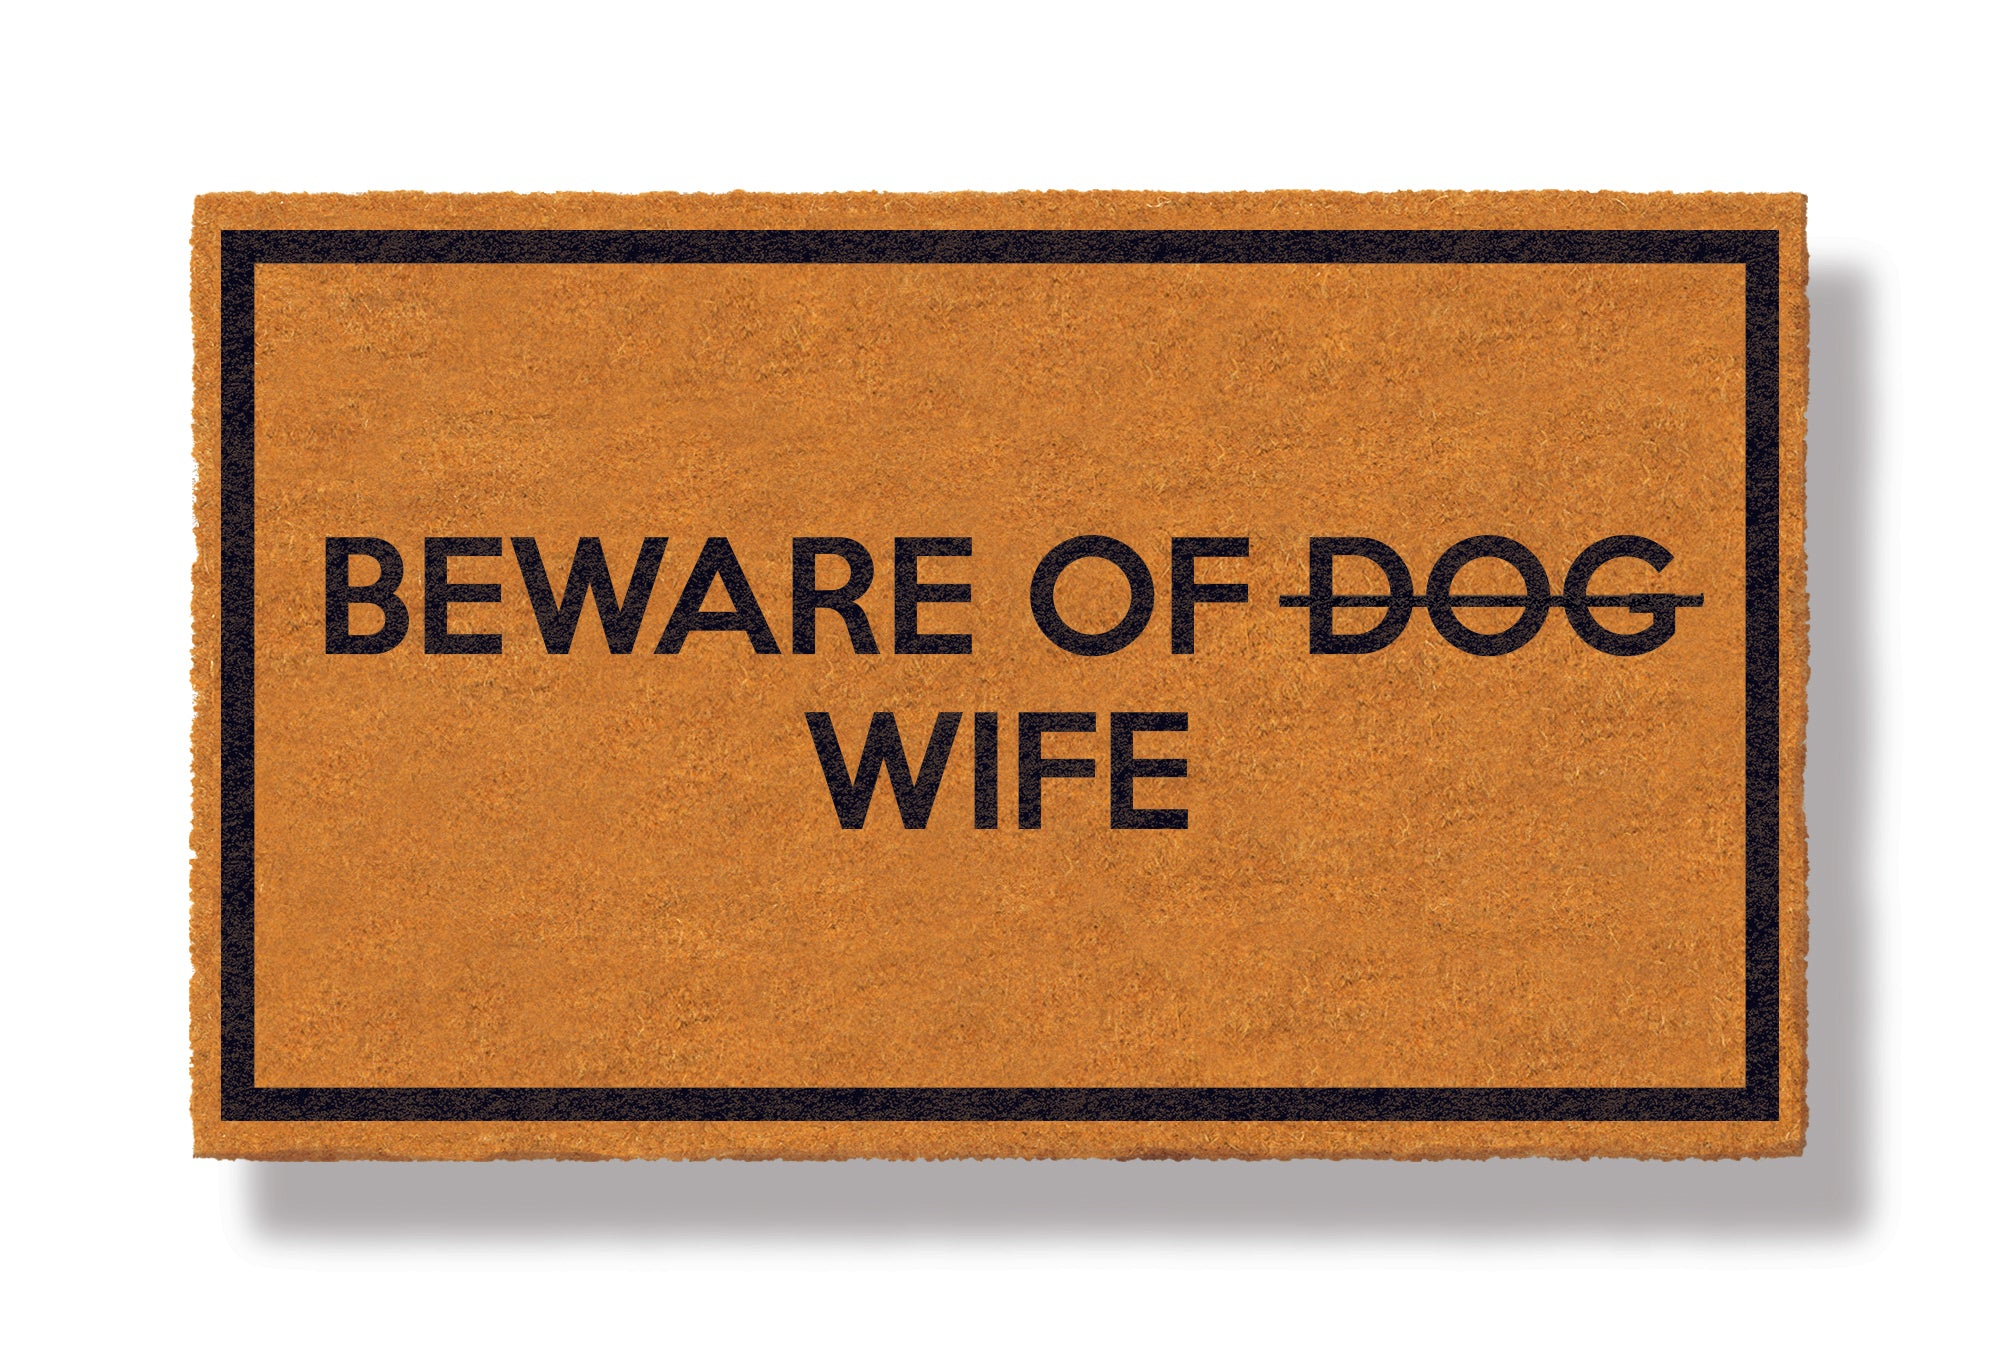 This coir welcome mat is a funny doormat on a white background with a drop shadow. The brown doormat has a black border and has black centered text that reads Beware of Dog strikethrough Wife.